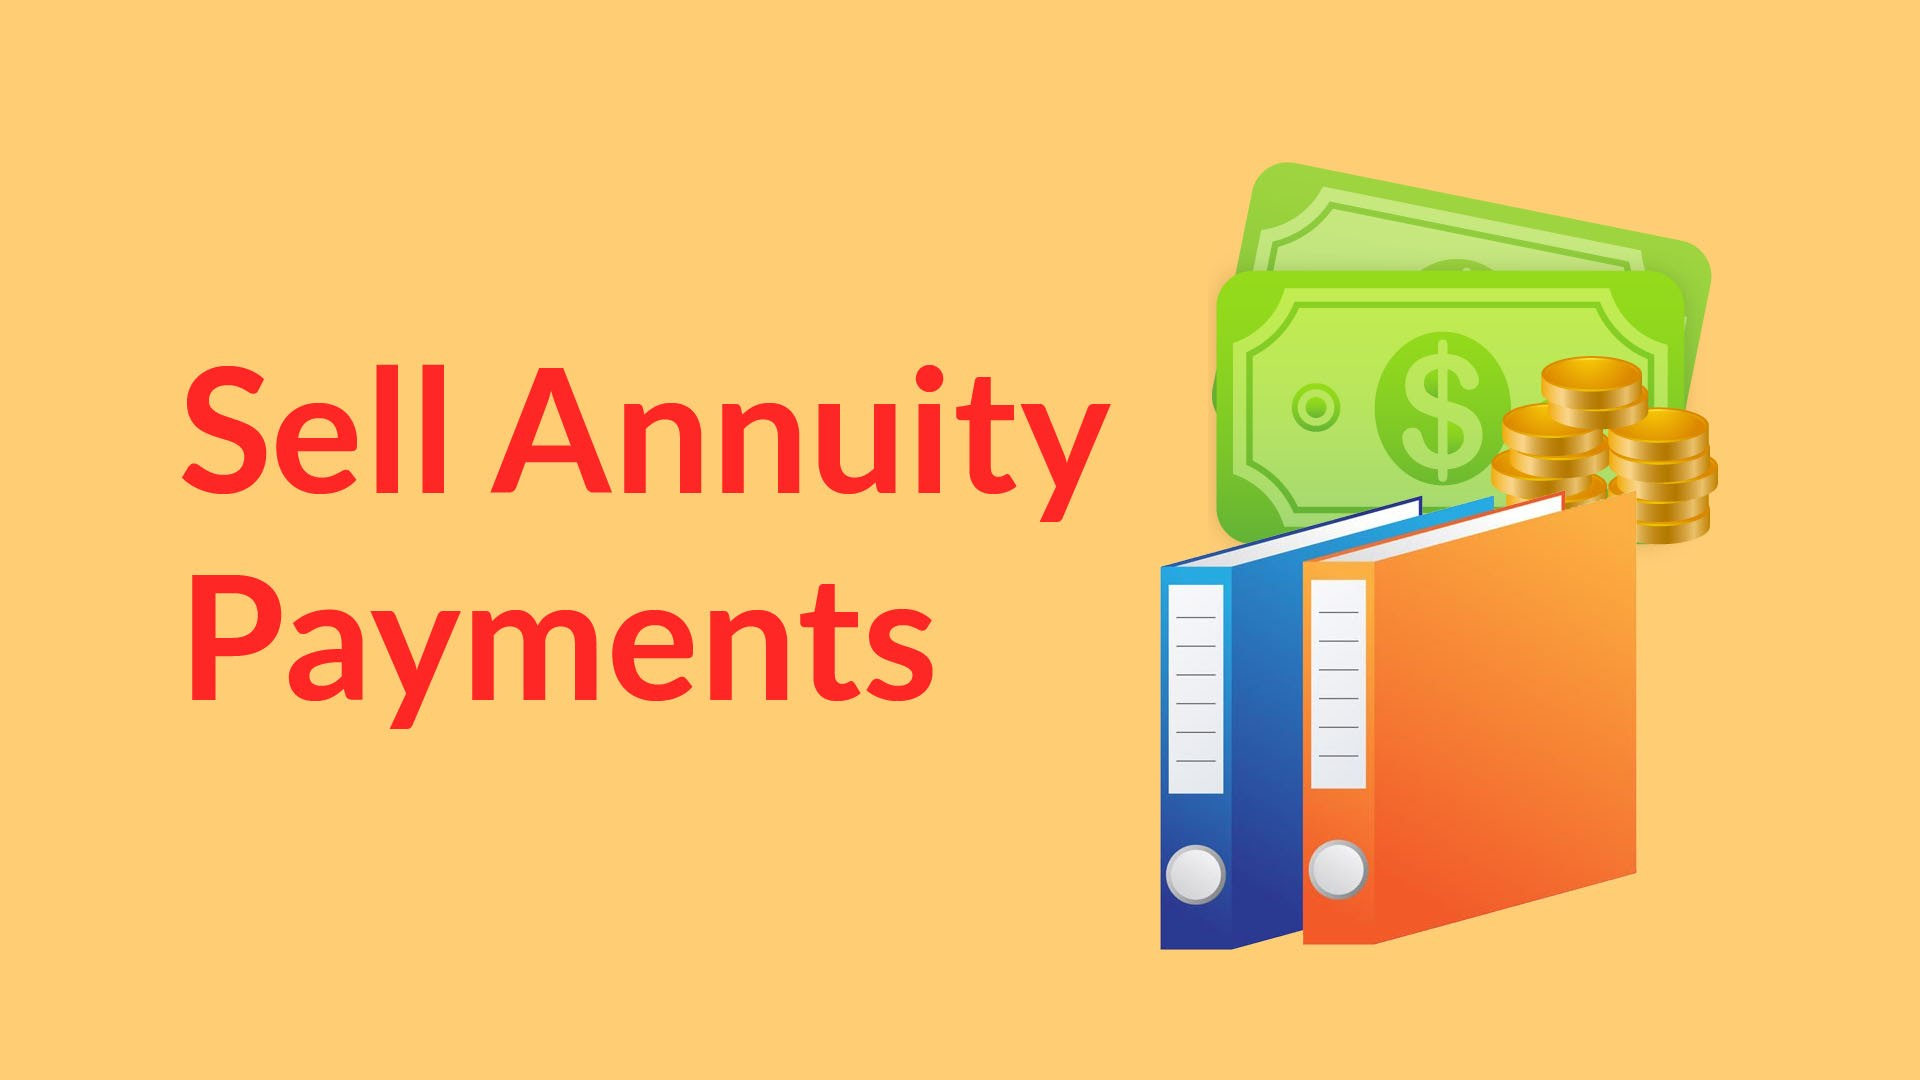 Annuity Quotes Sell Annuity Payment Images Sell Annuity Payments Hd Wallpaper And